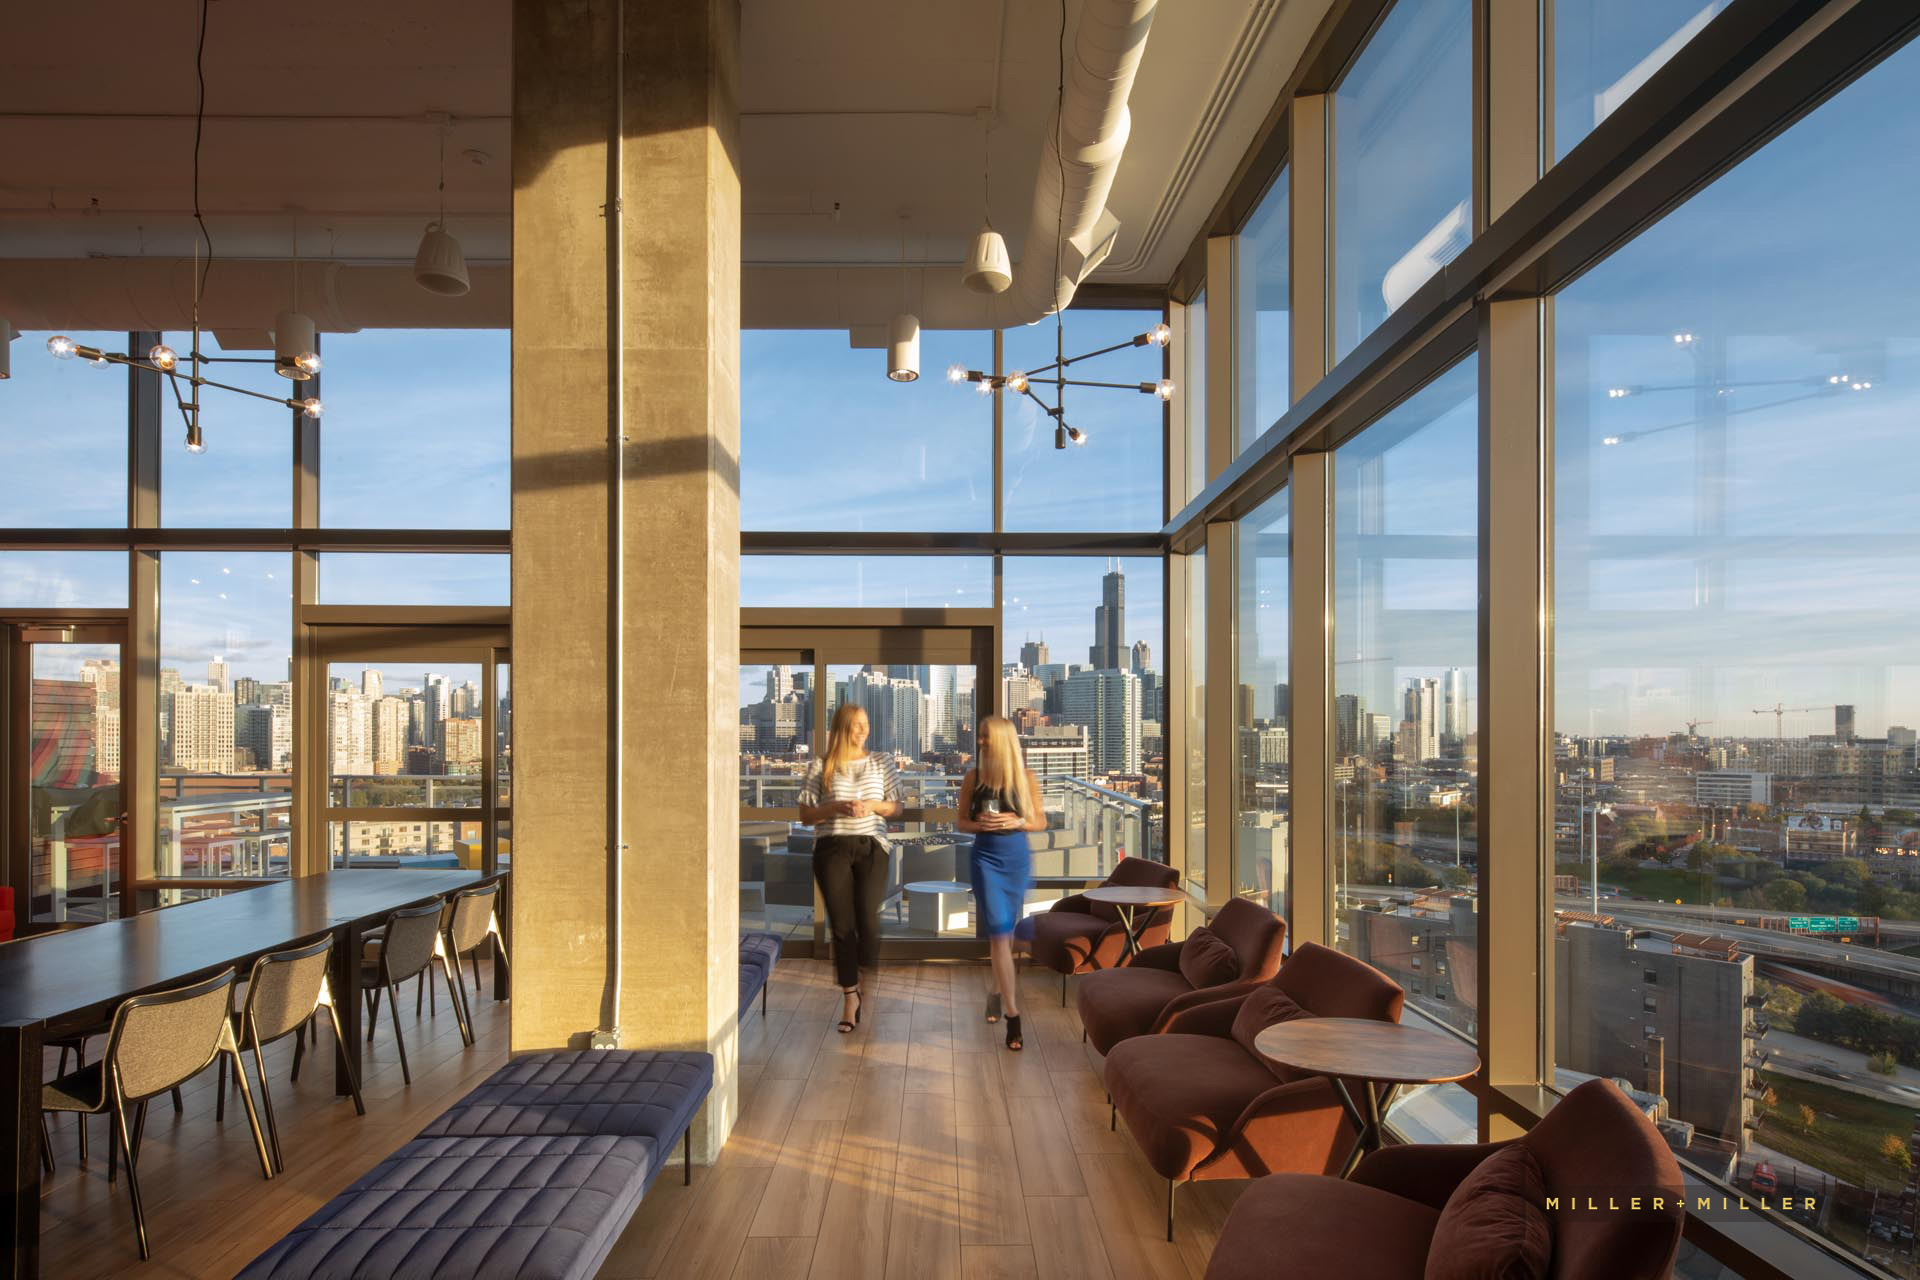 Chicago rooftop penthouse bar restaurant interior images skyline